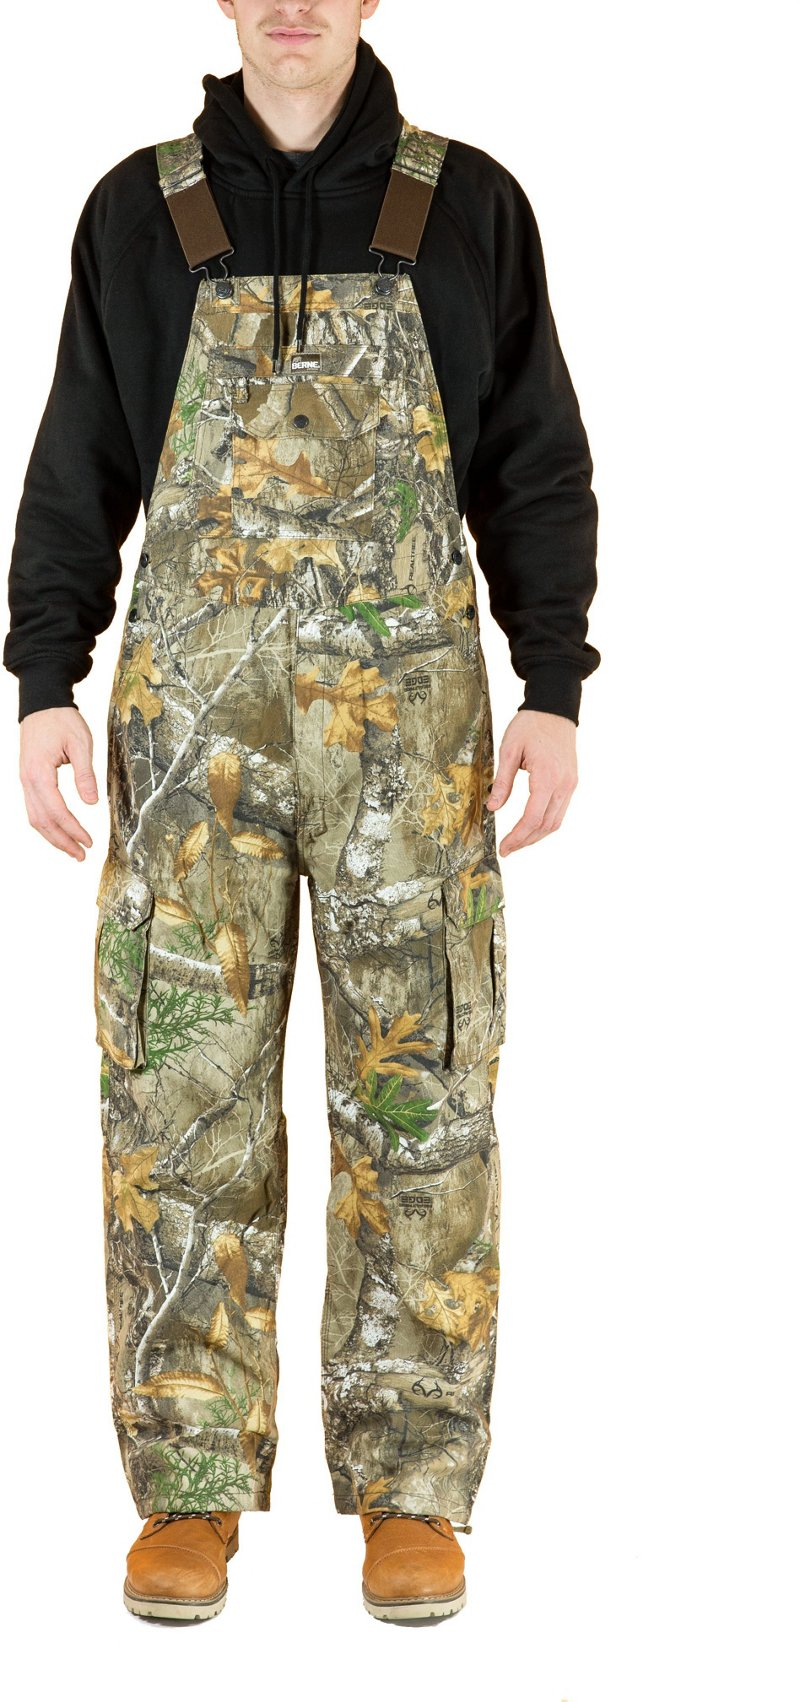 Berne Men's Bantam Bib Overalls - Camo Clothing, Adult Insulated Camo at Academy Sports thumbnail